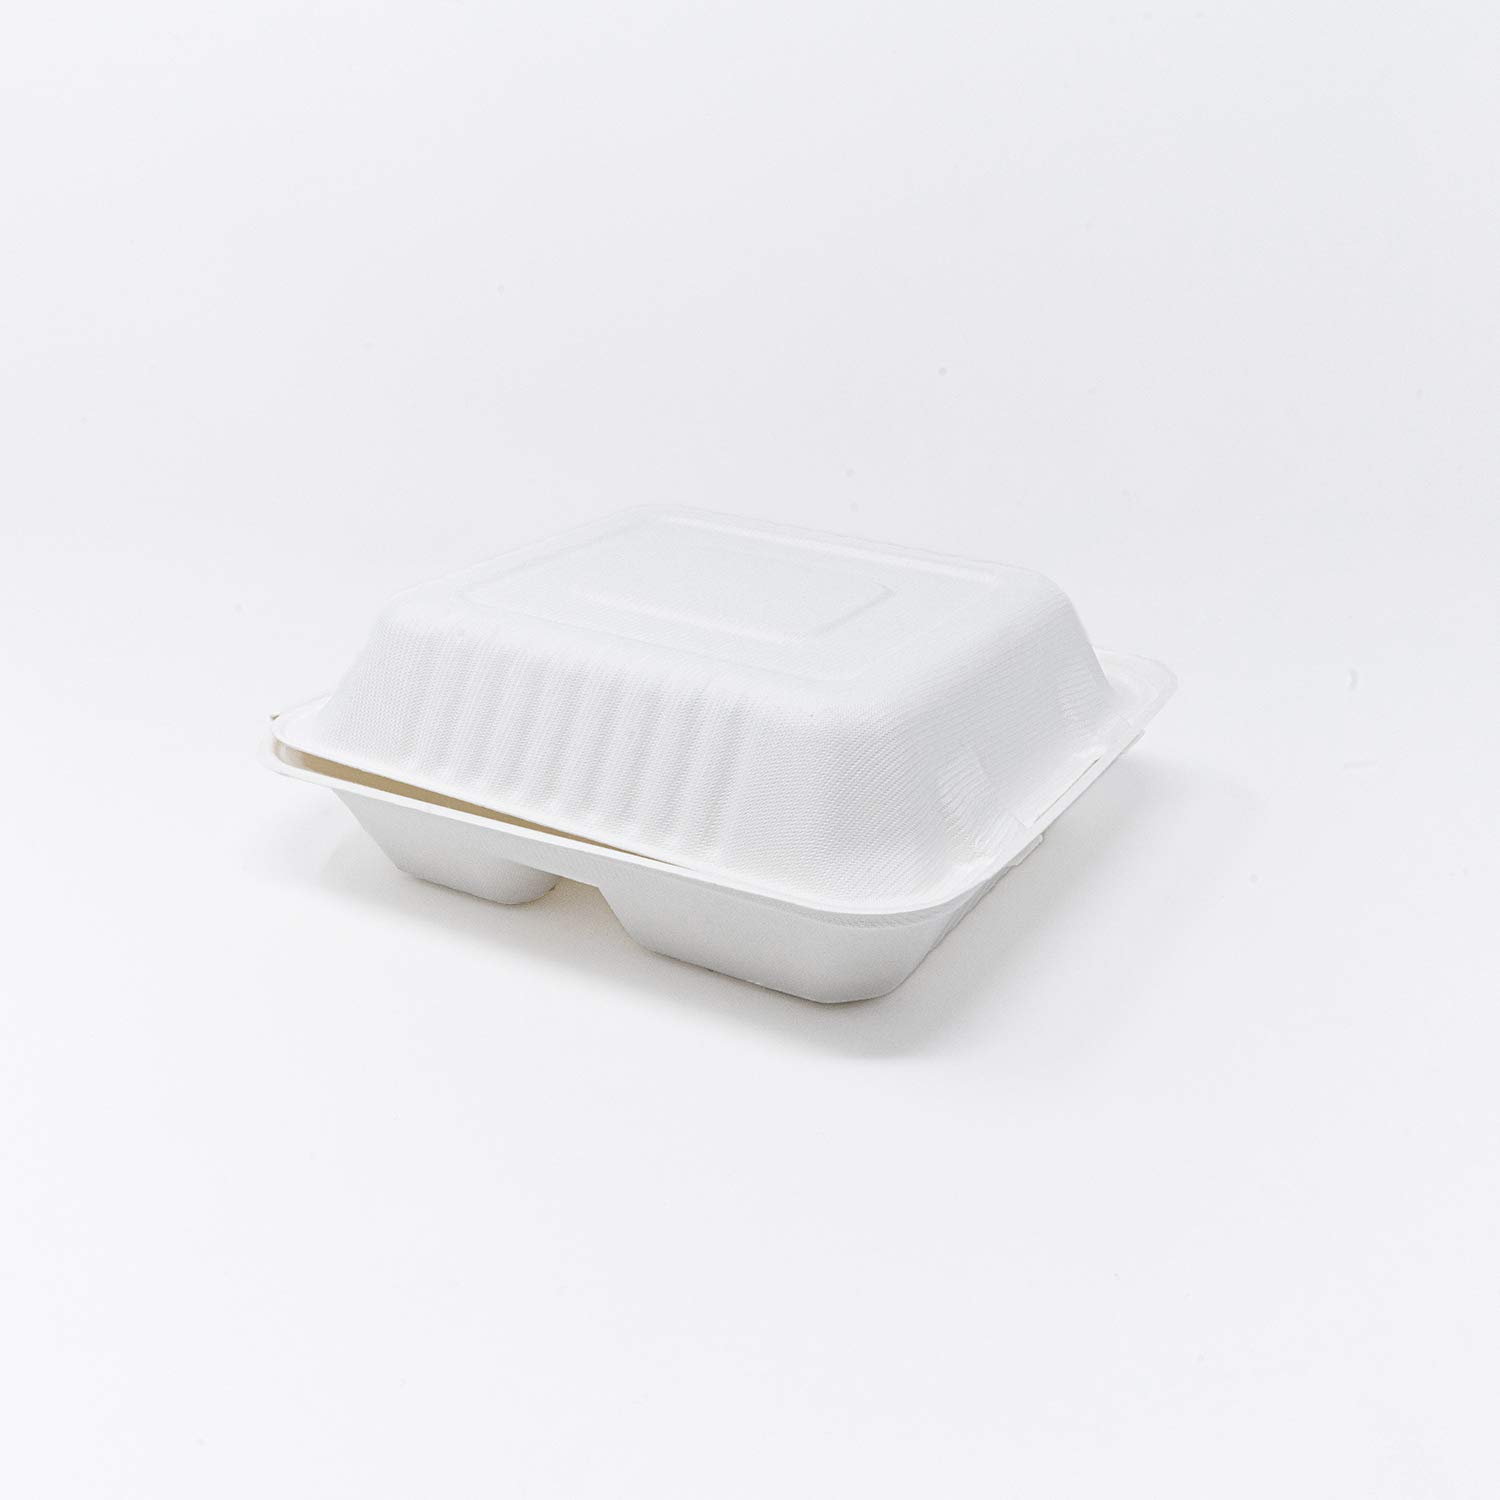 Zume Compostable, Eco Friendly, Disposable 8